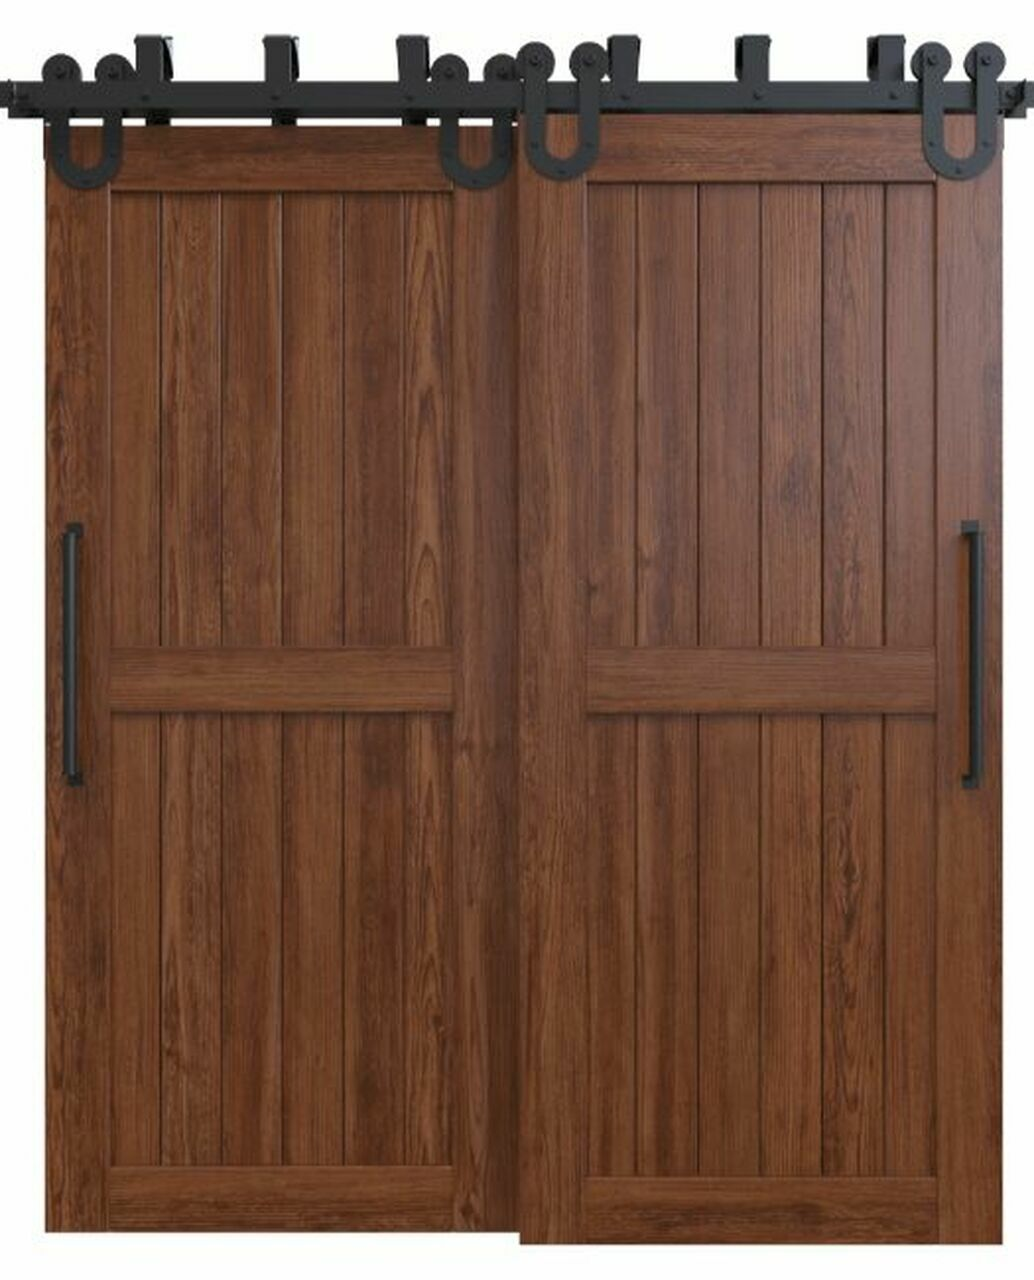 naples dark stained wood 2 panel bypass barn door